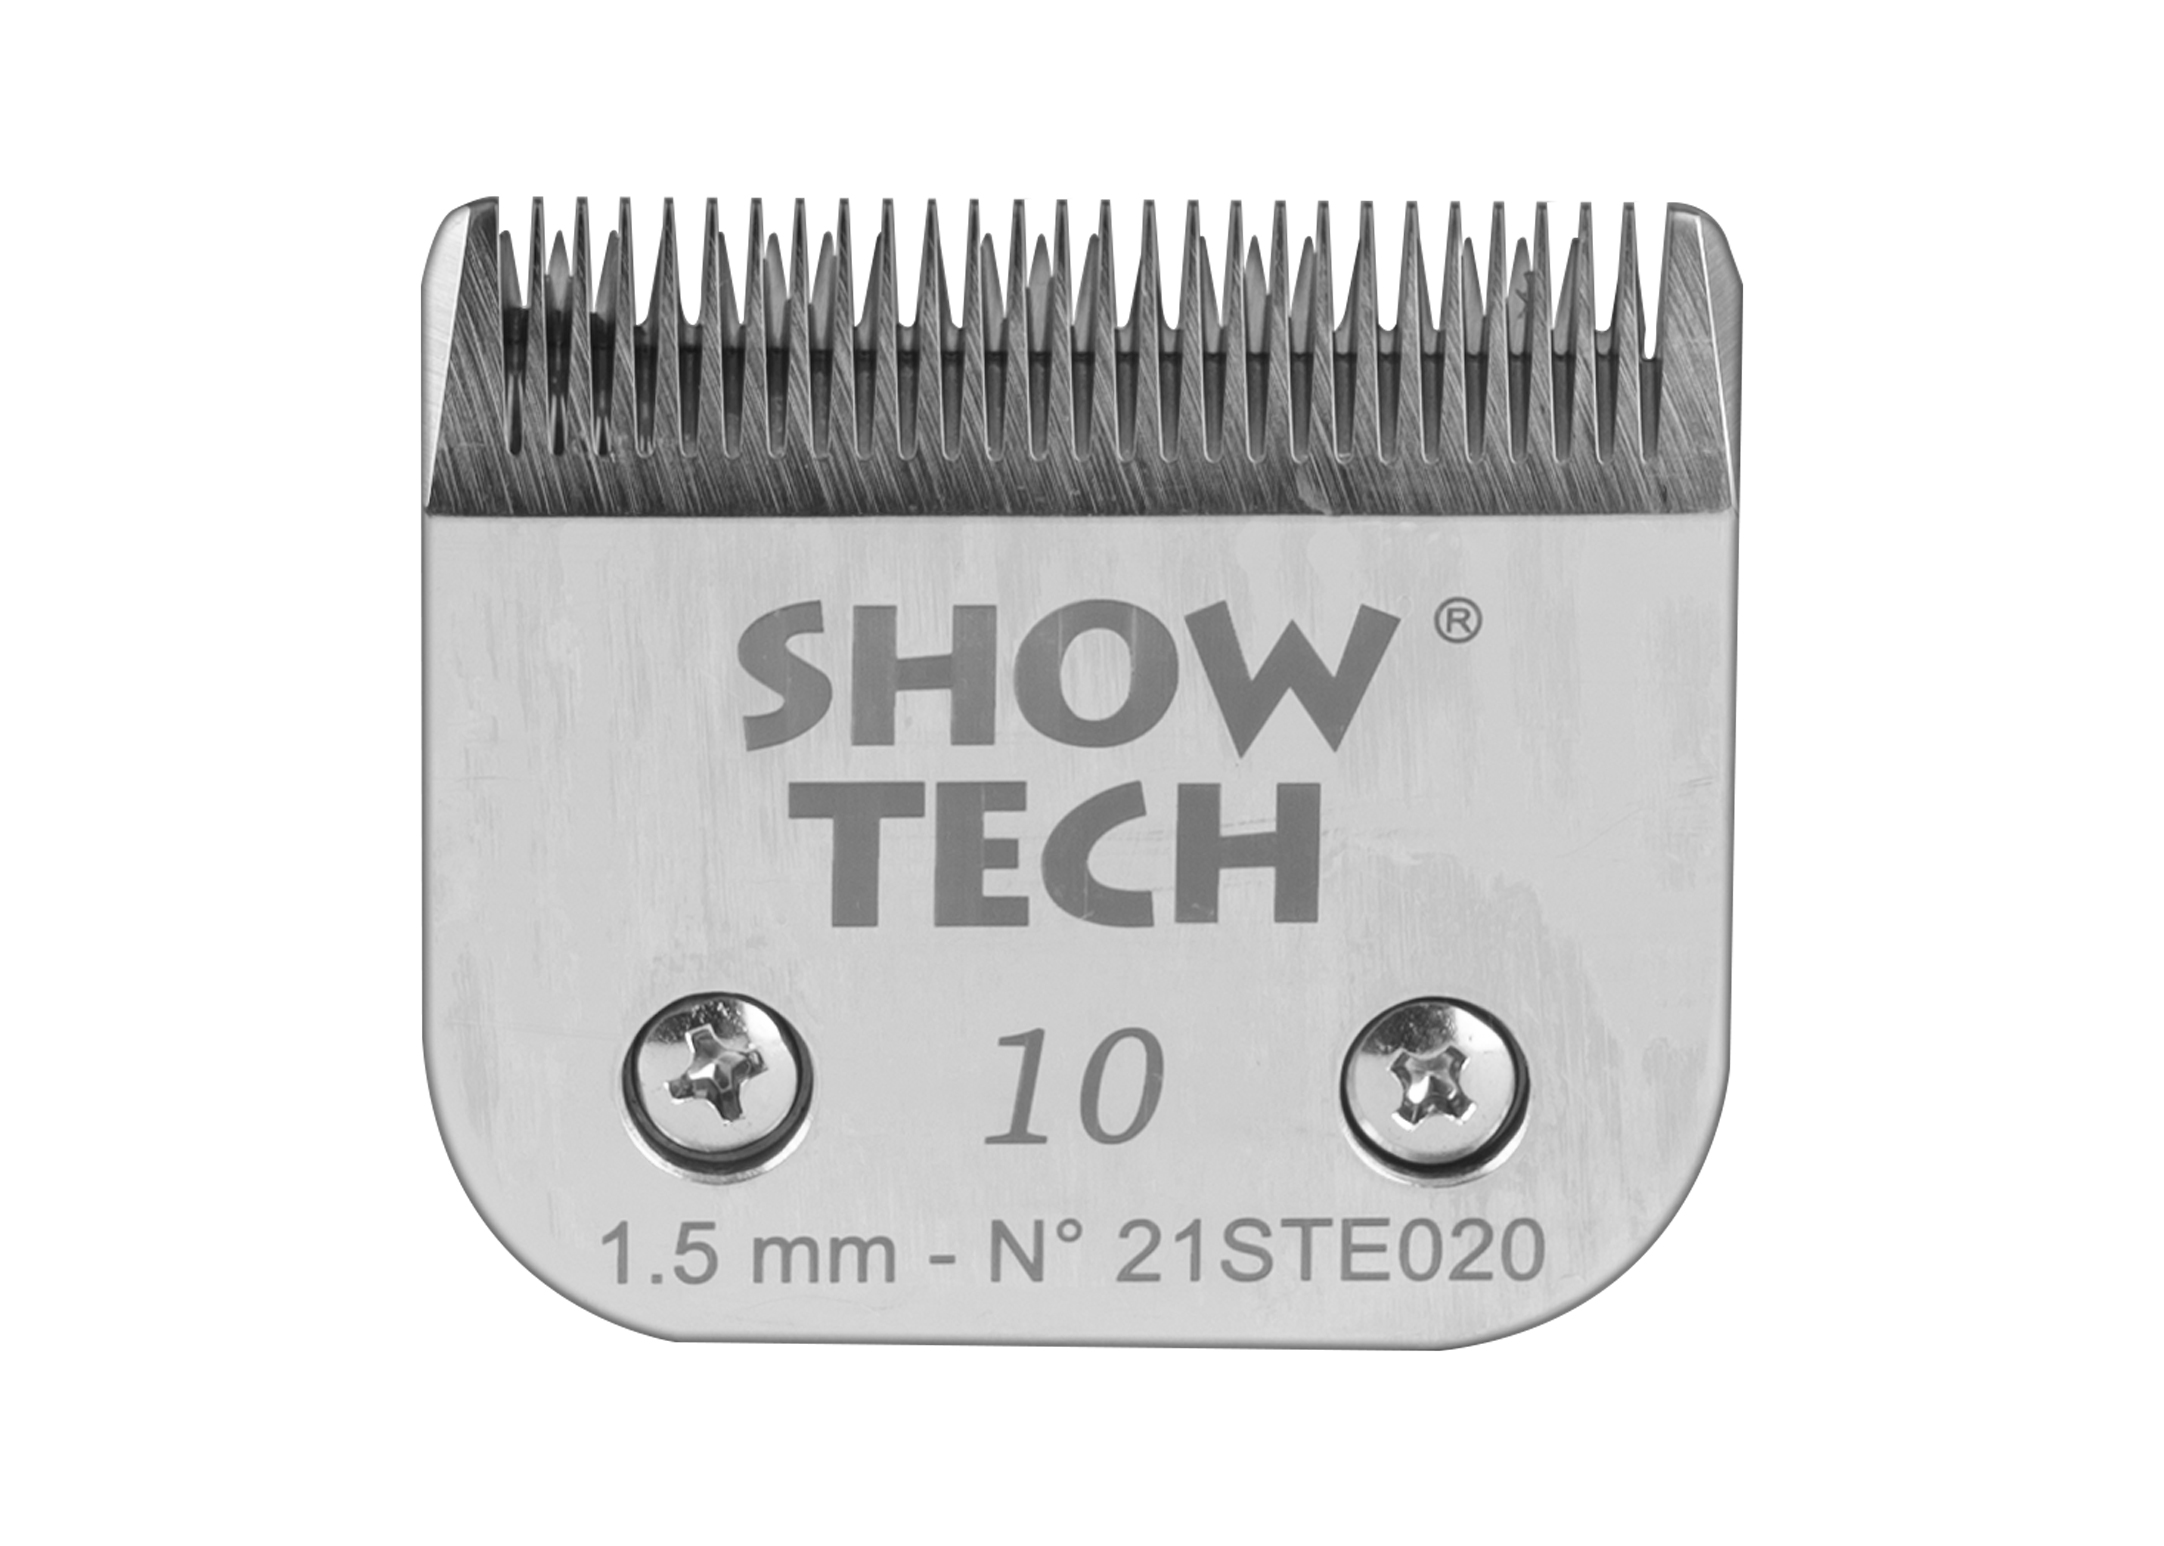 Show Tech Pro Blades snap-on Scheerkop #10 - 1,5mm